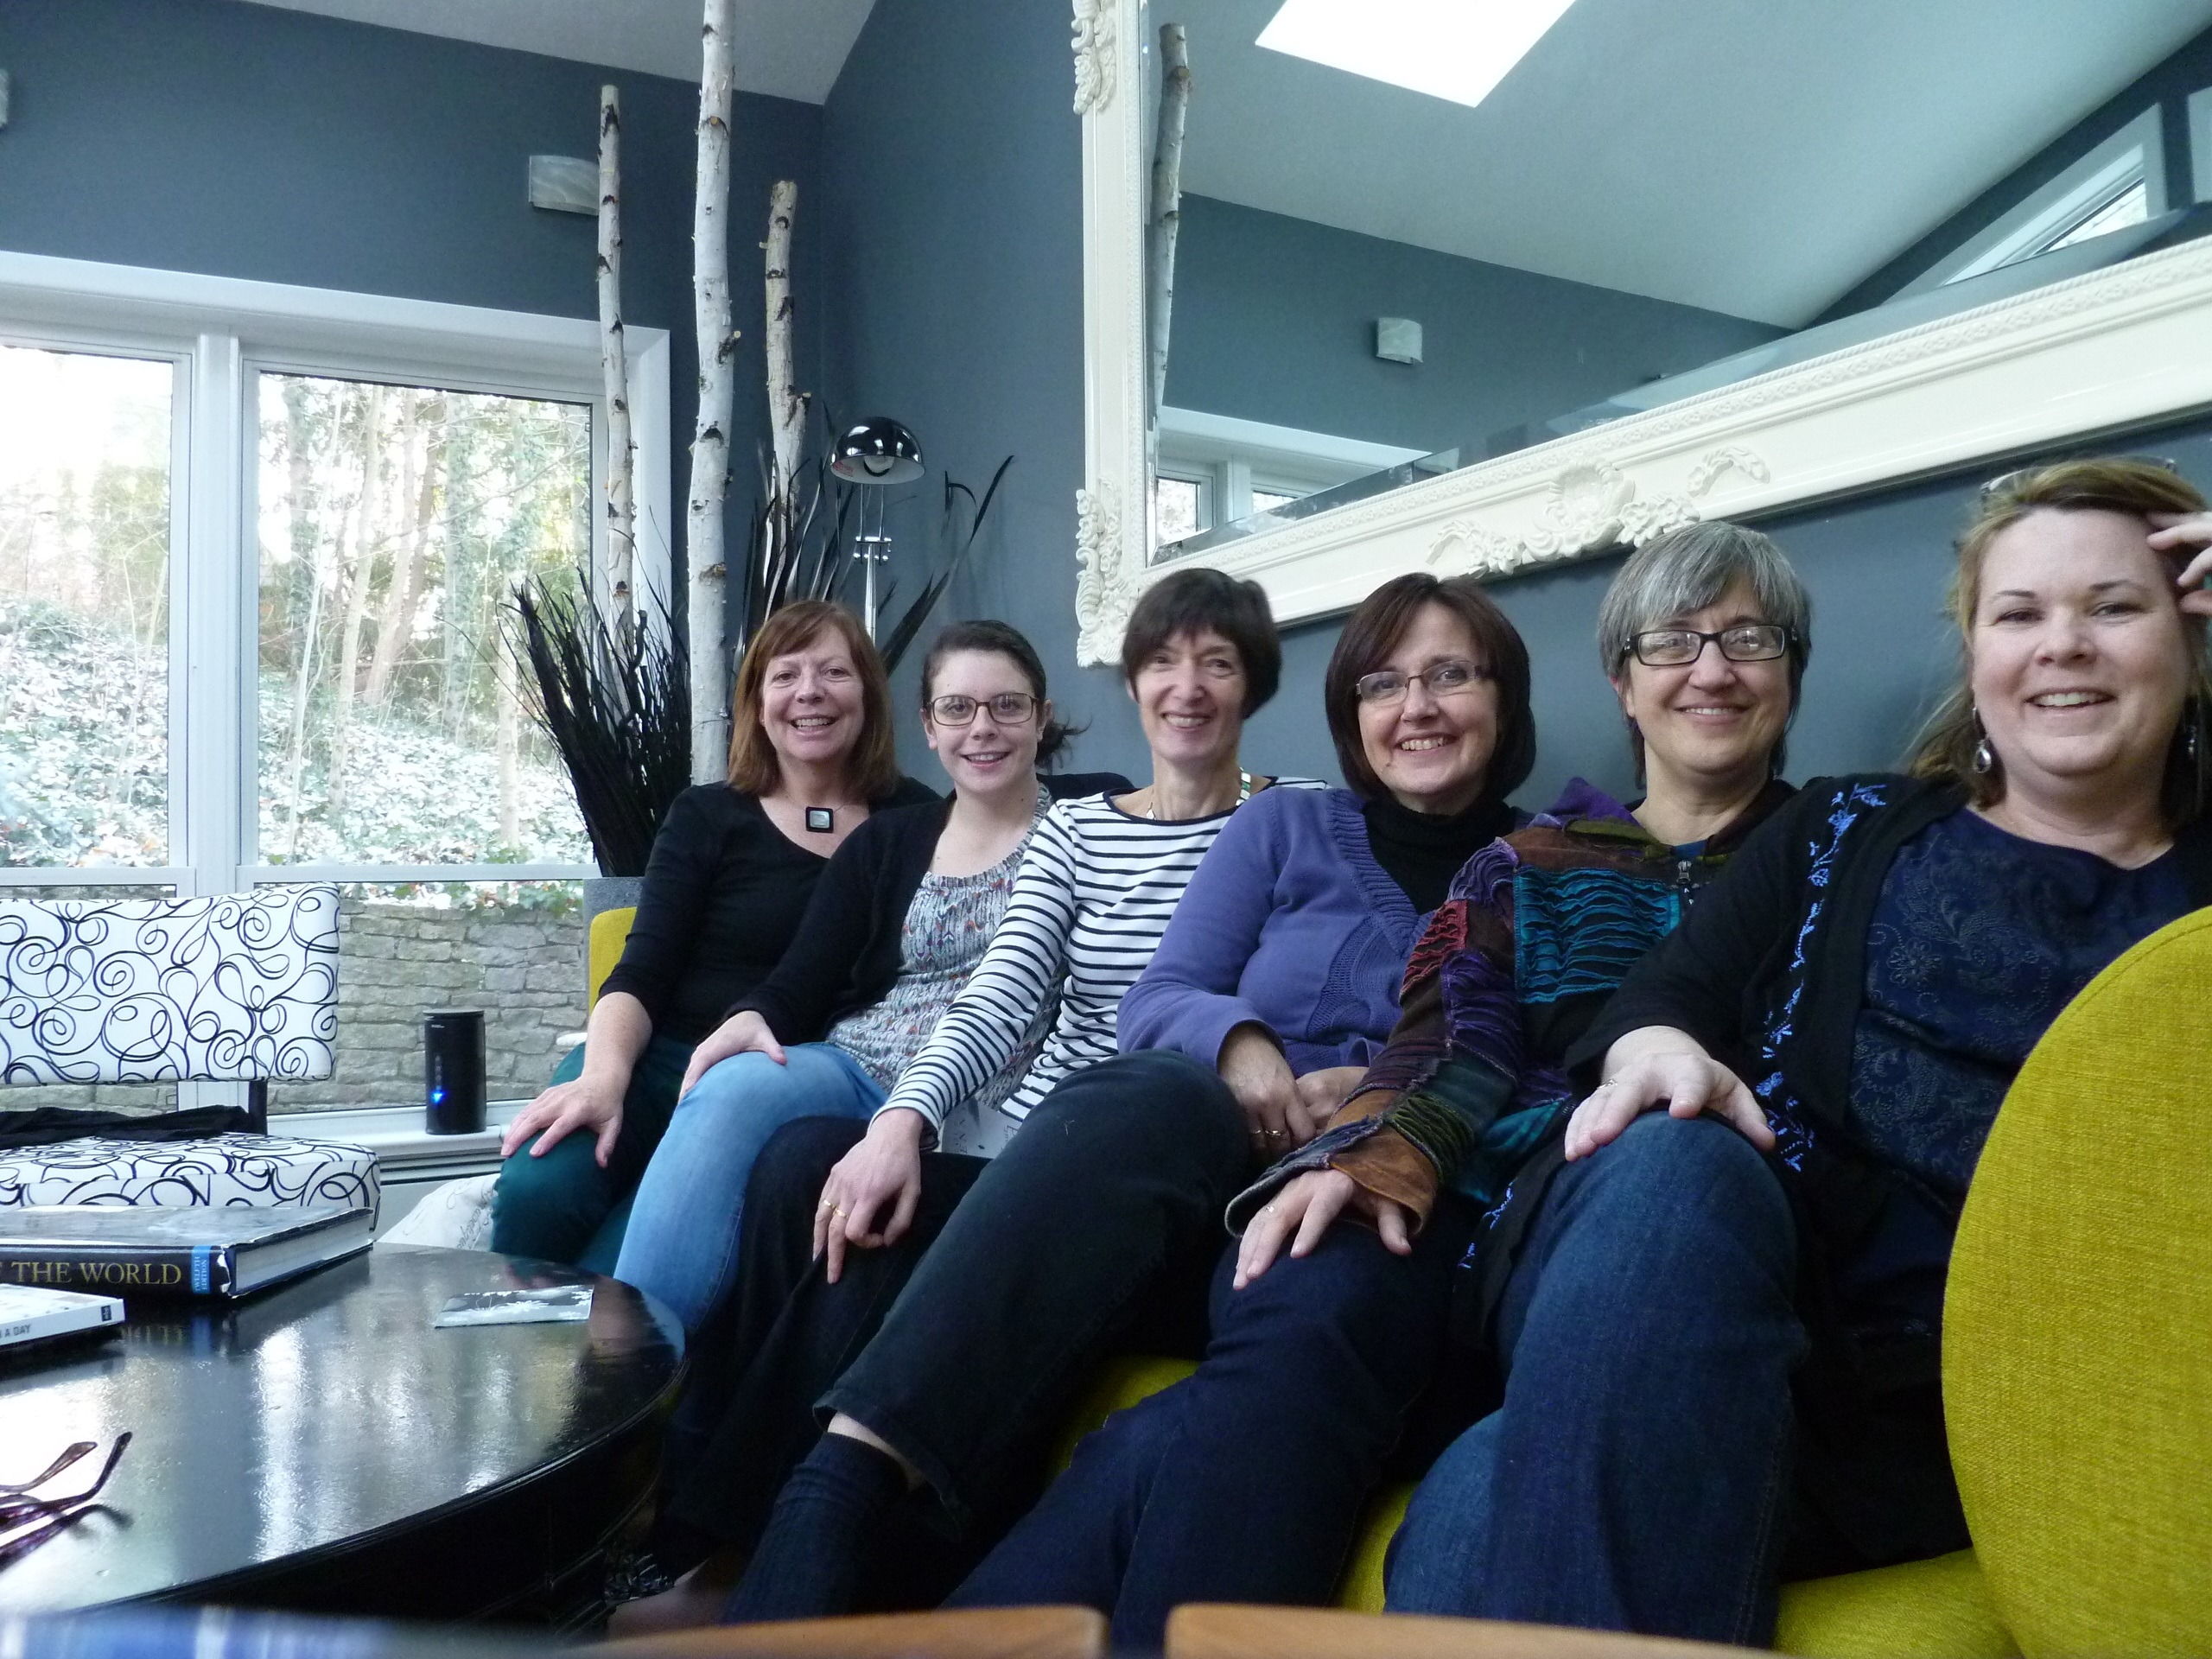 Not Just Chick Lit Book Club